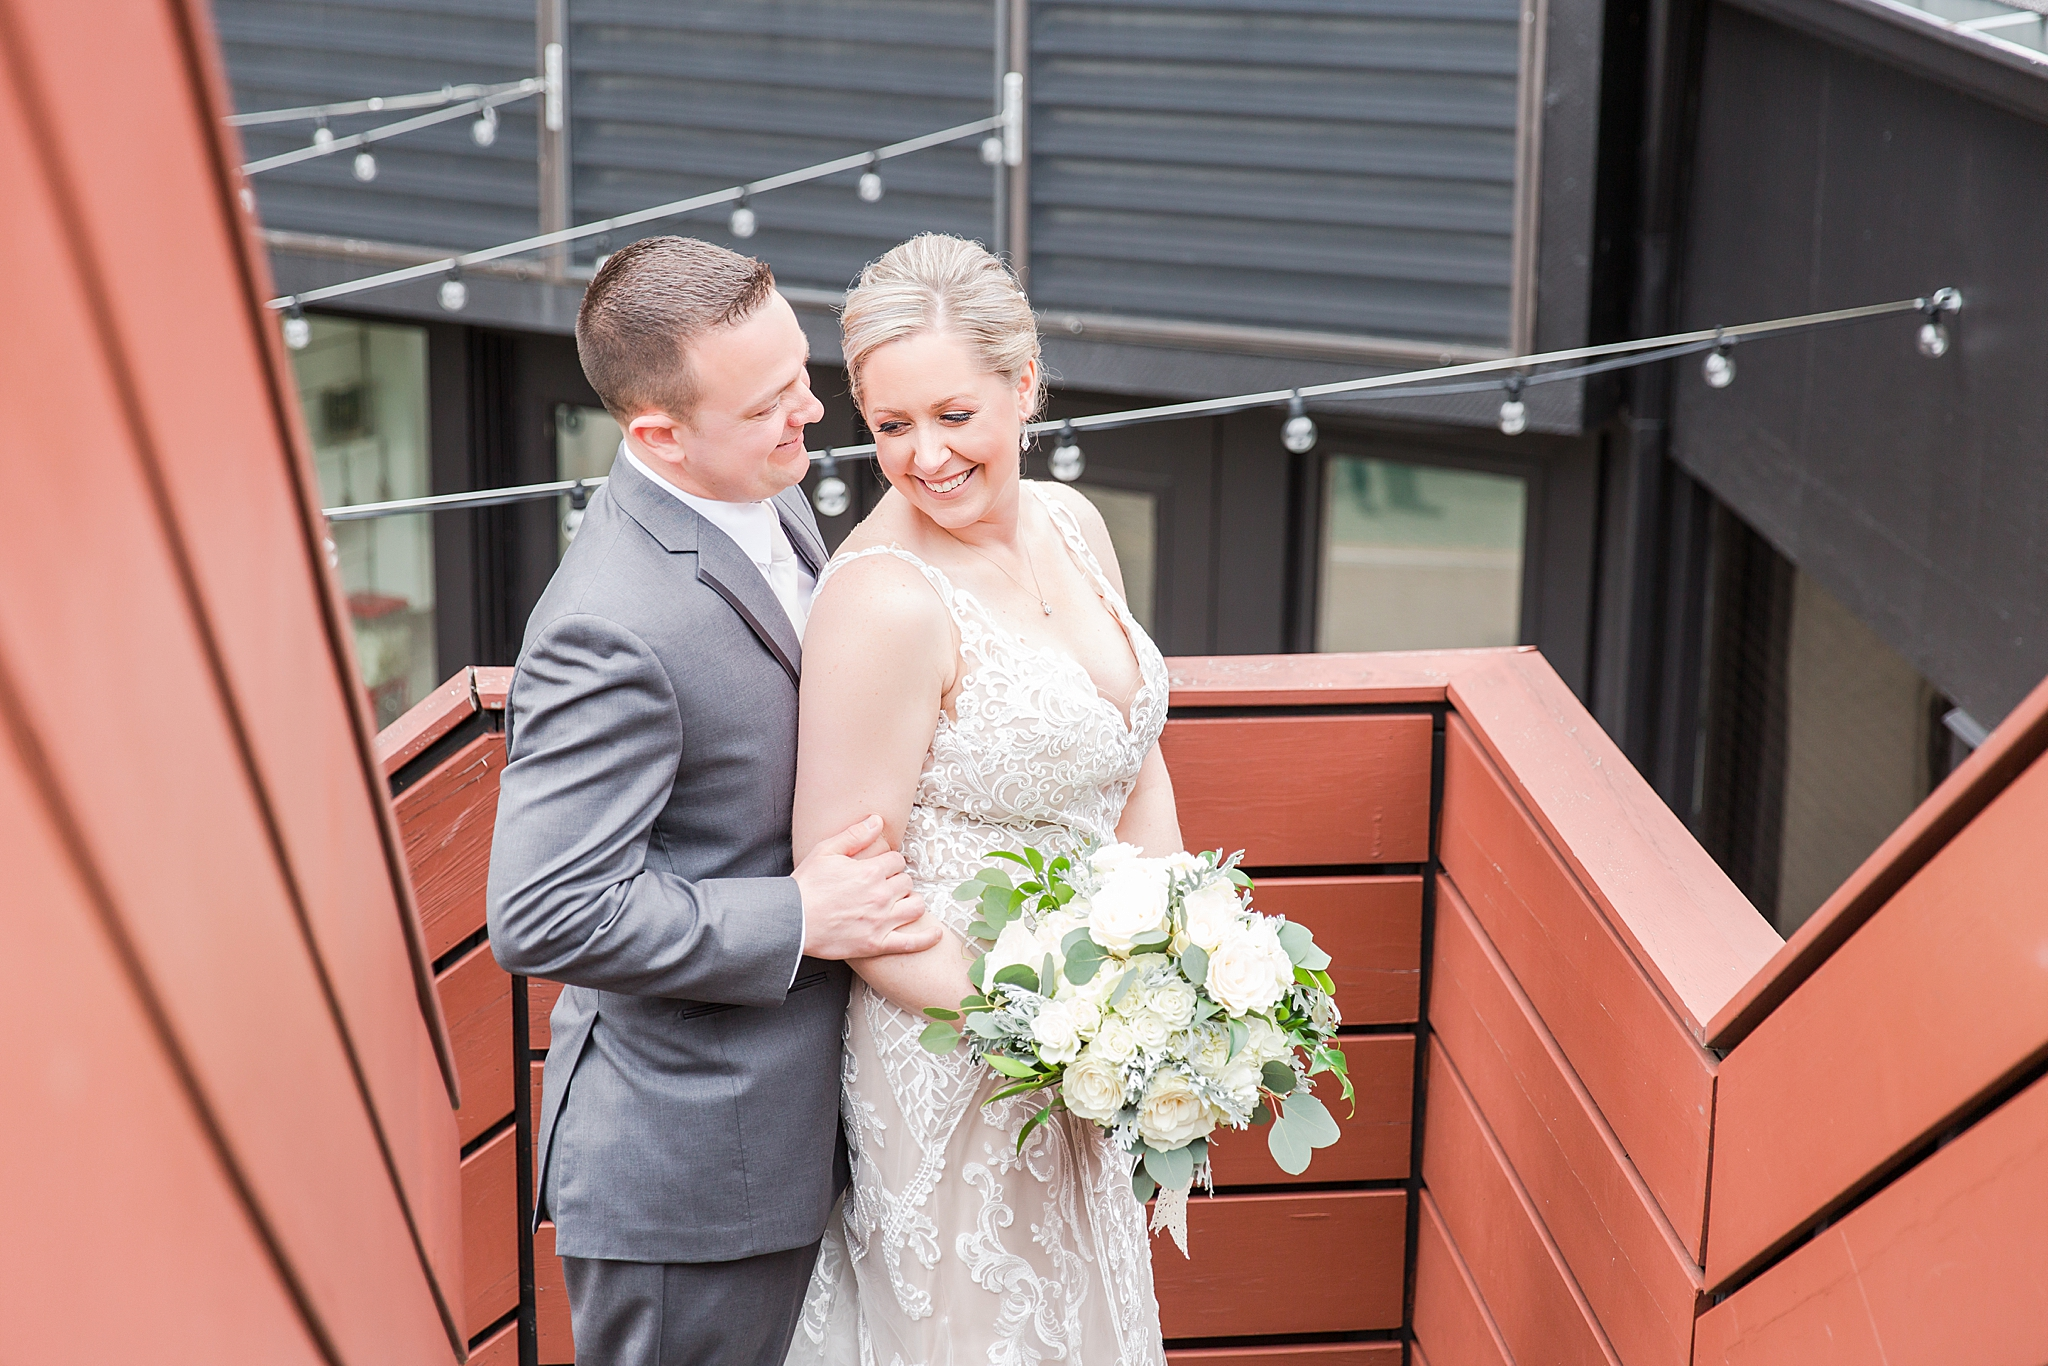 modern-romantic-wedding-photography-at-webers-in-ann-arbor-michigan-by-courtney-carolyn-photography_0030.jpg